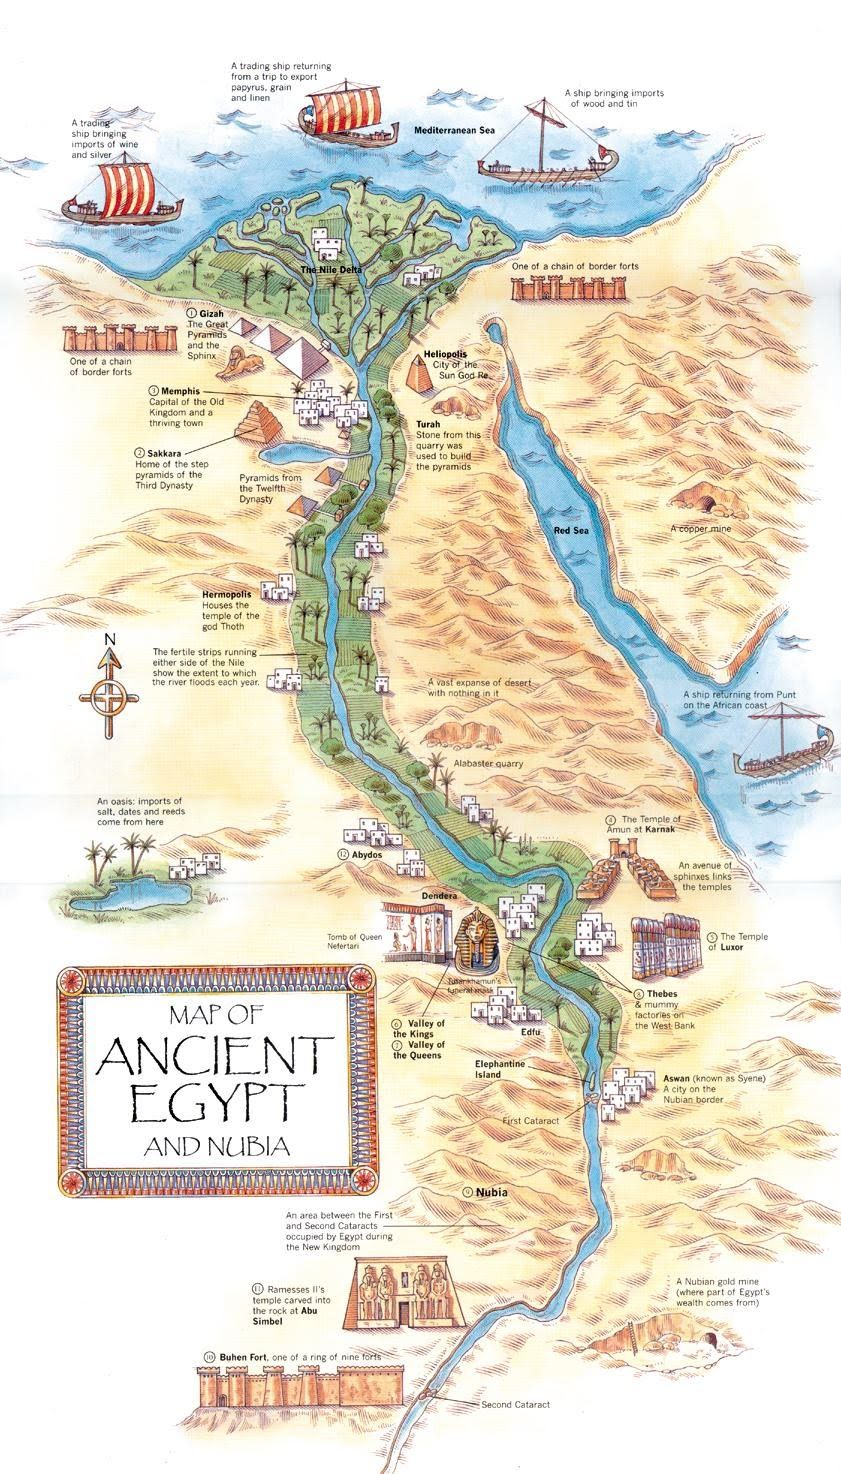 Ancient Egypt maps for the map assignment Mr Brunkens Online